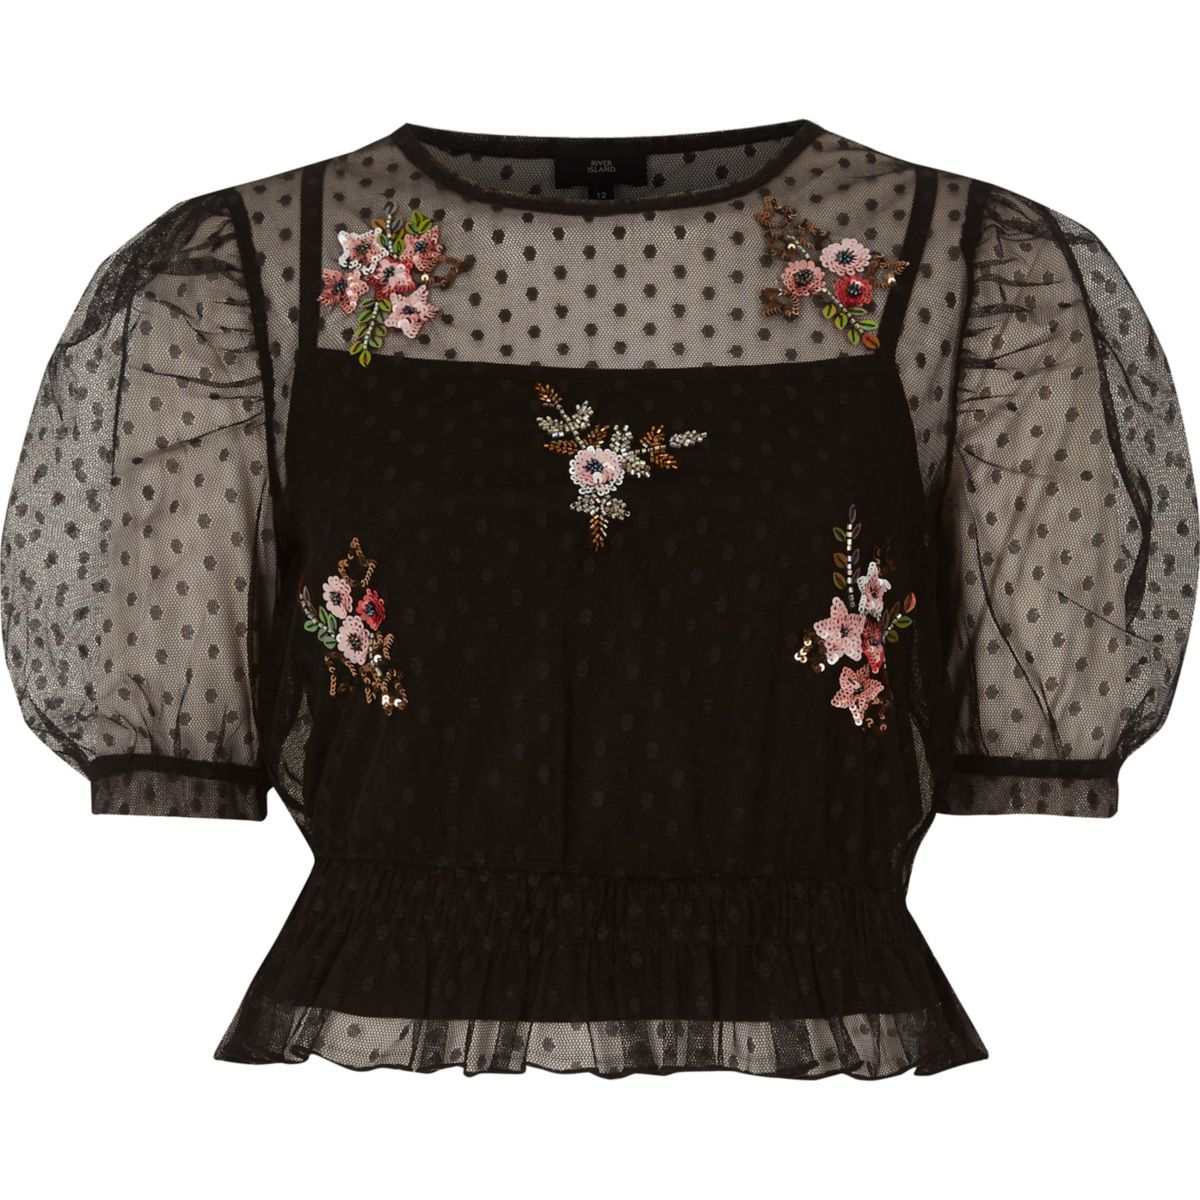 Black dobby mesh embroidered puff sleeve top